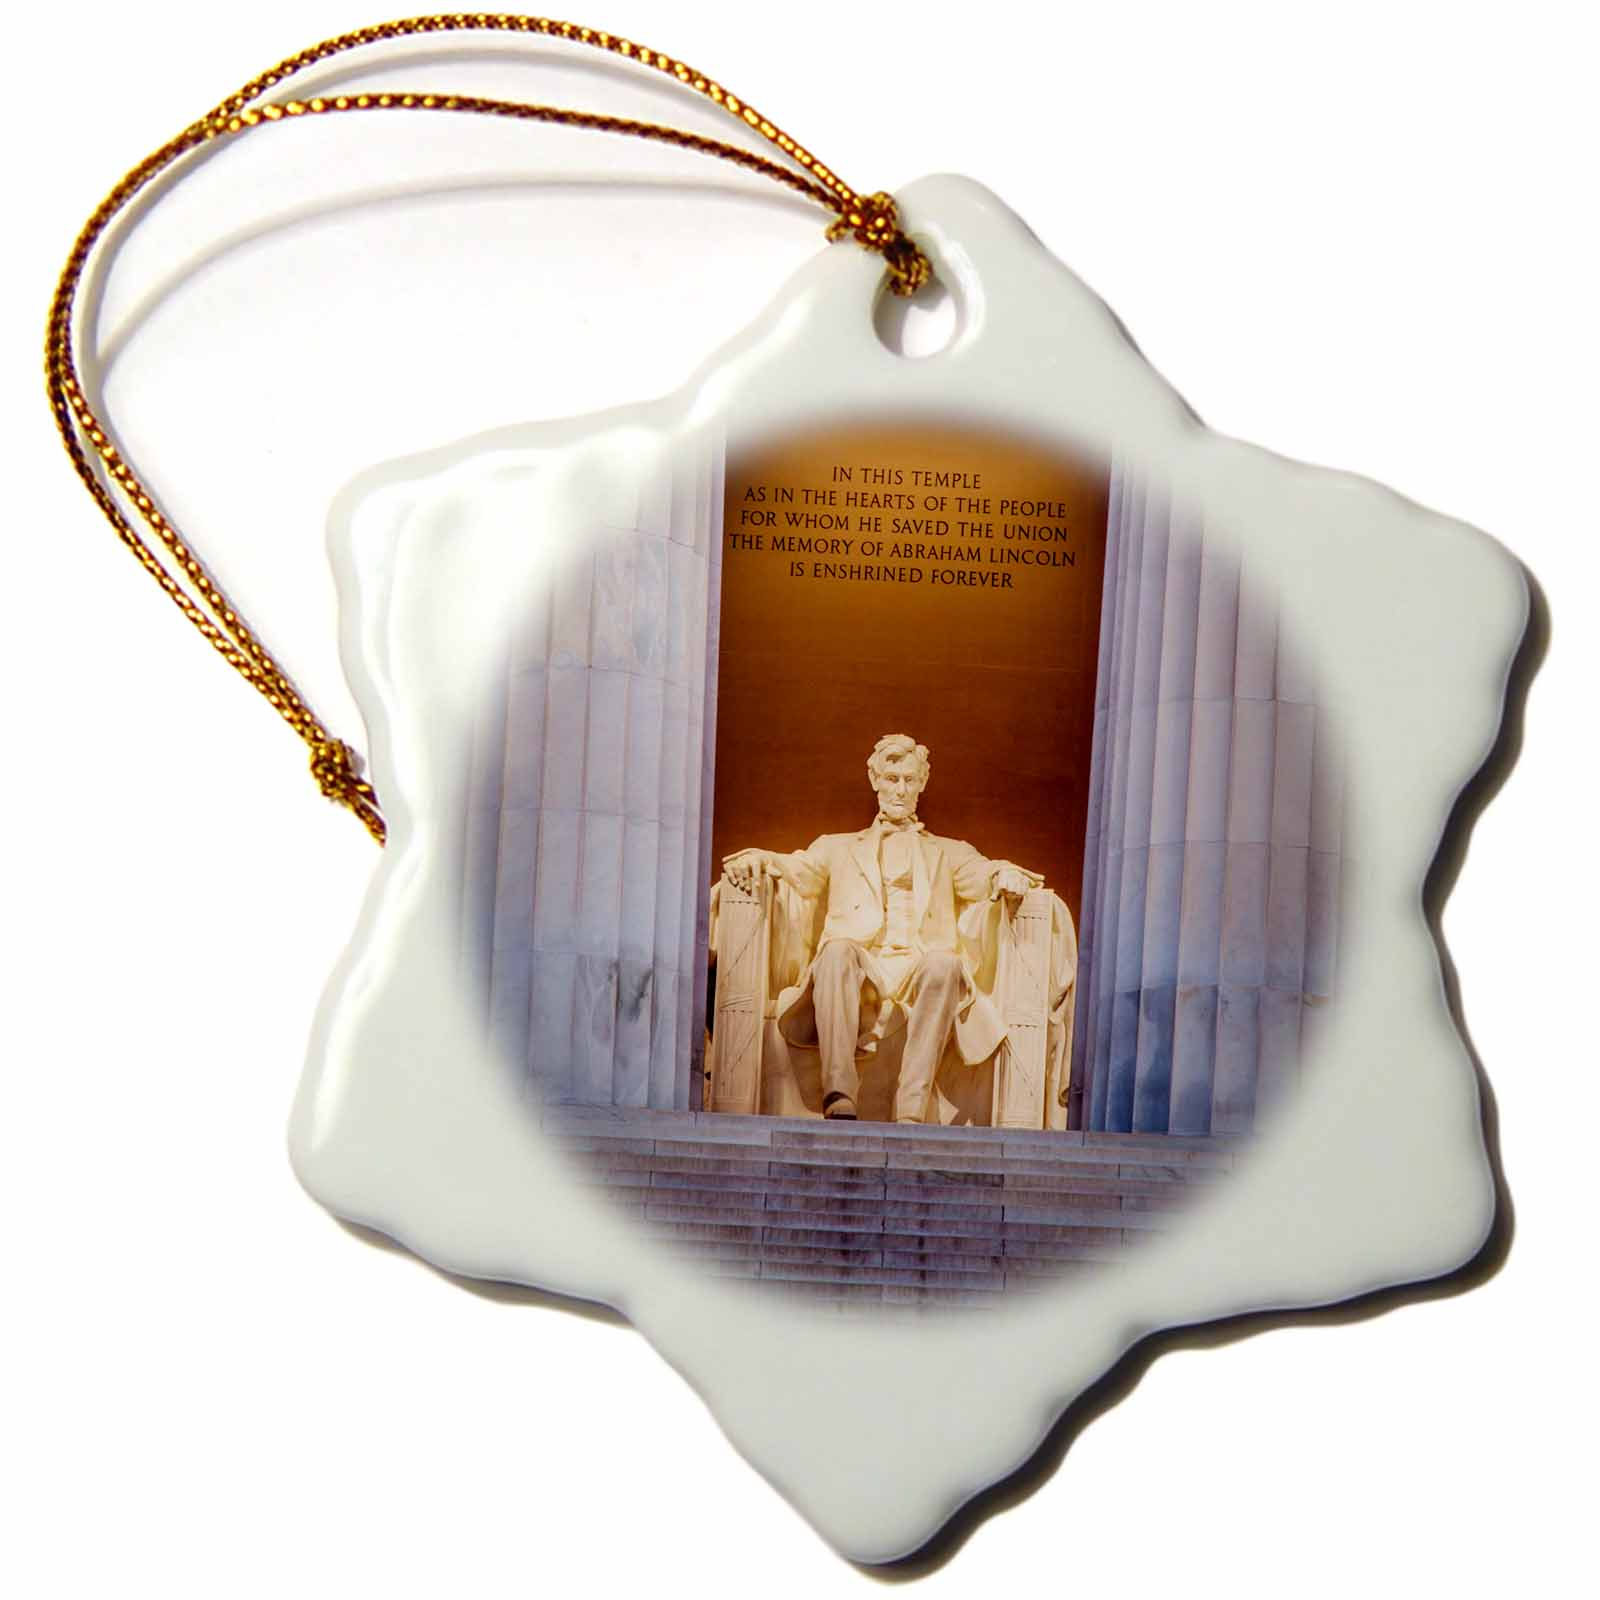 3dRose The Lincoln Memorial, Washington DC, USA., Snowflake Ornament, Porcelain, 3-inch